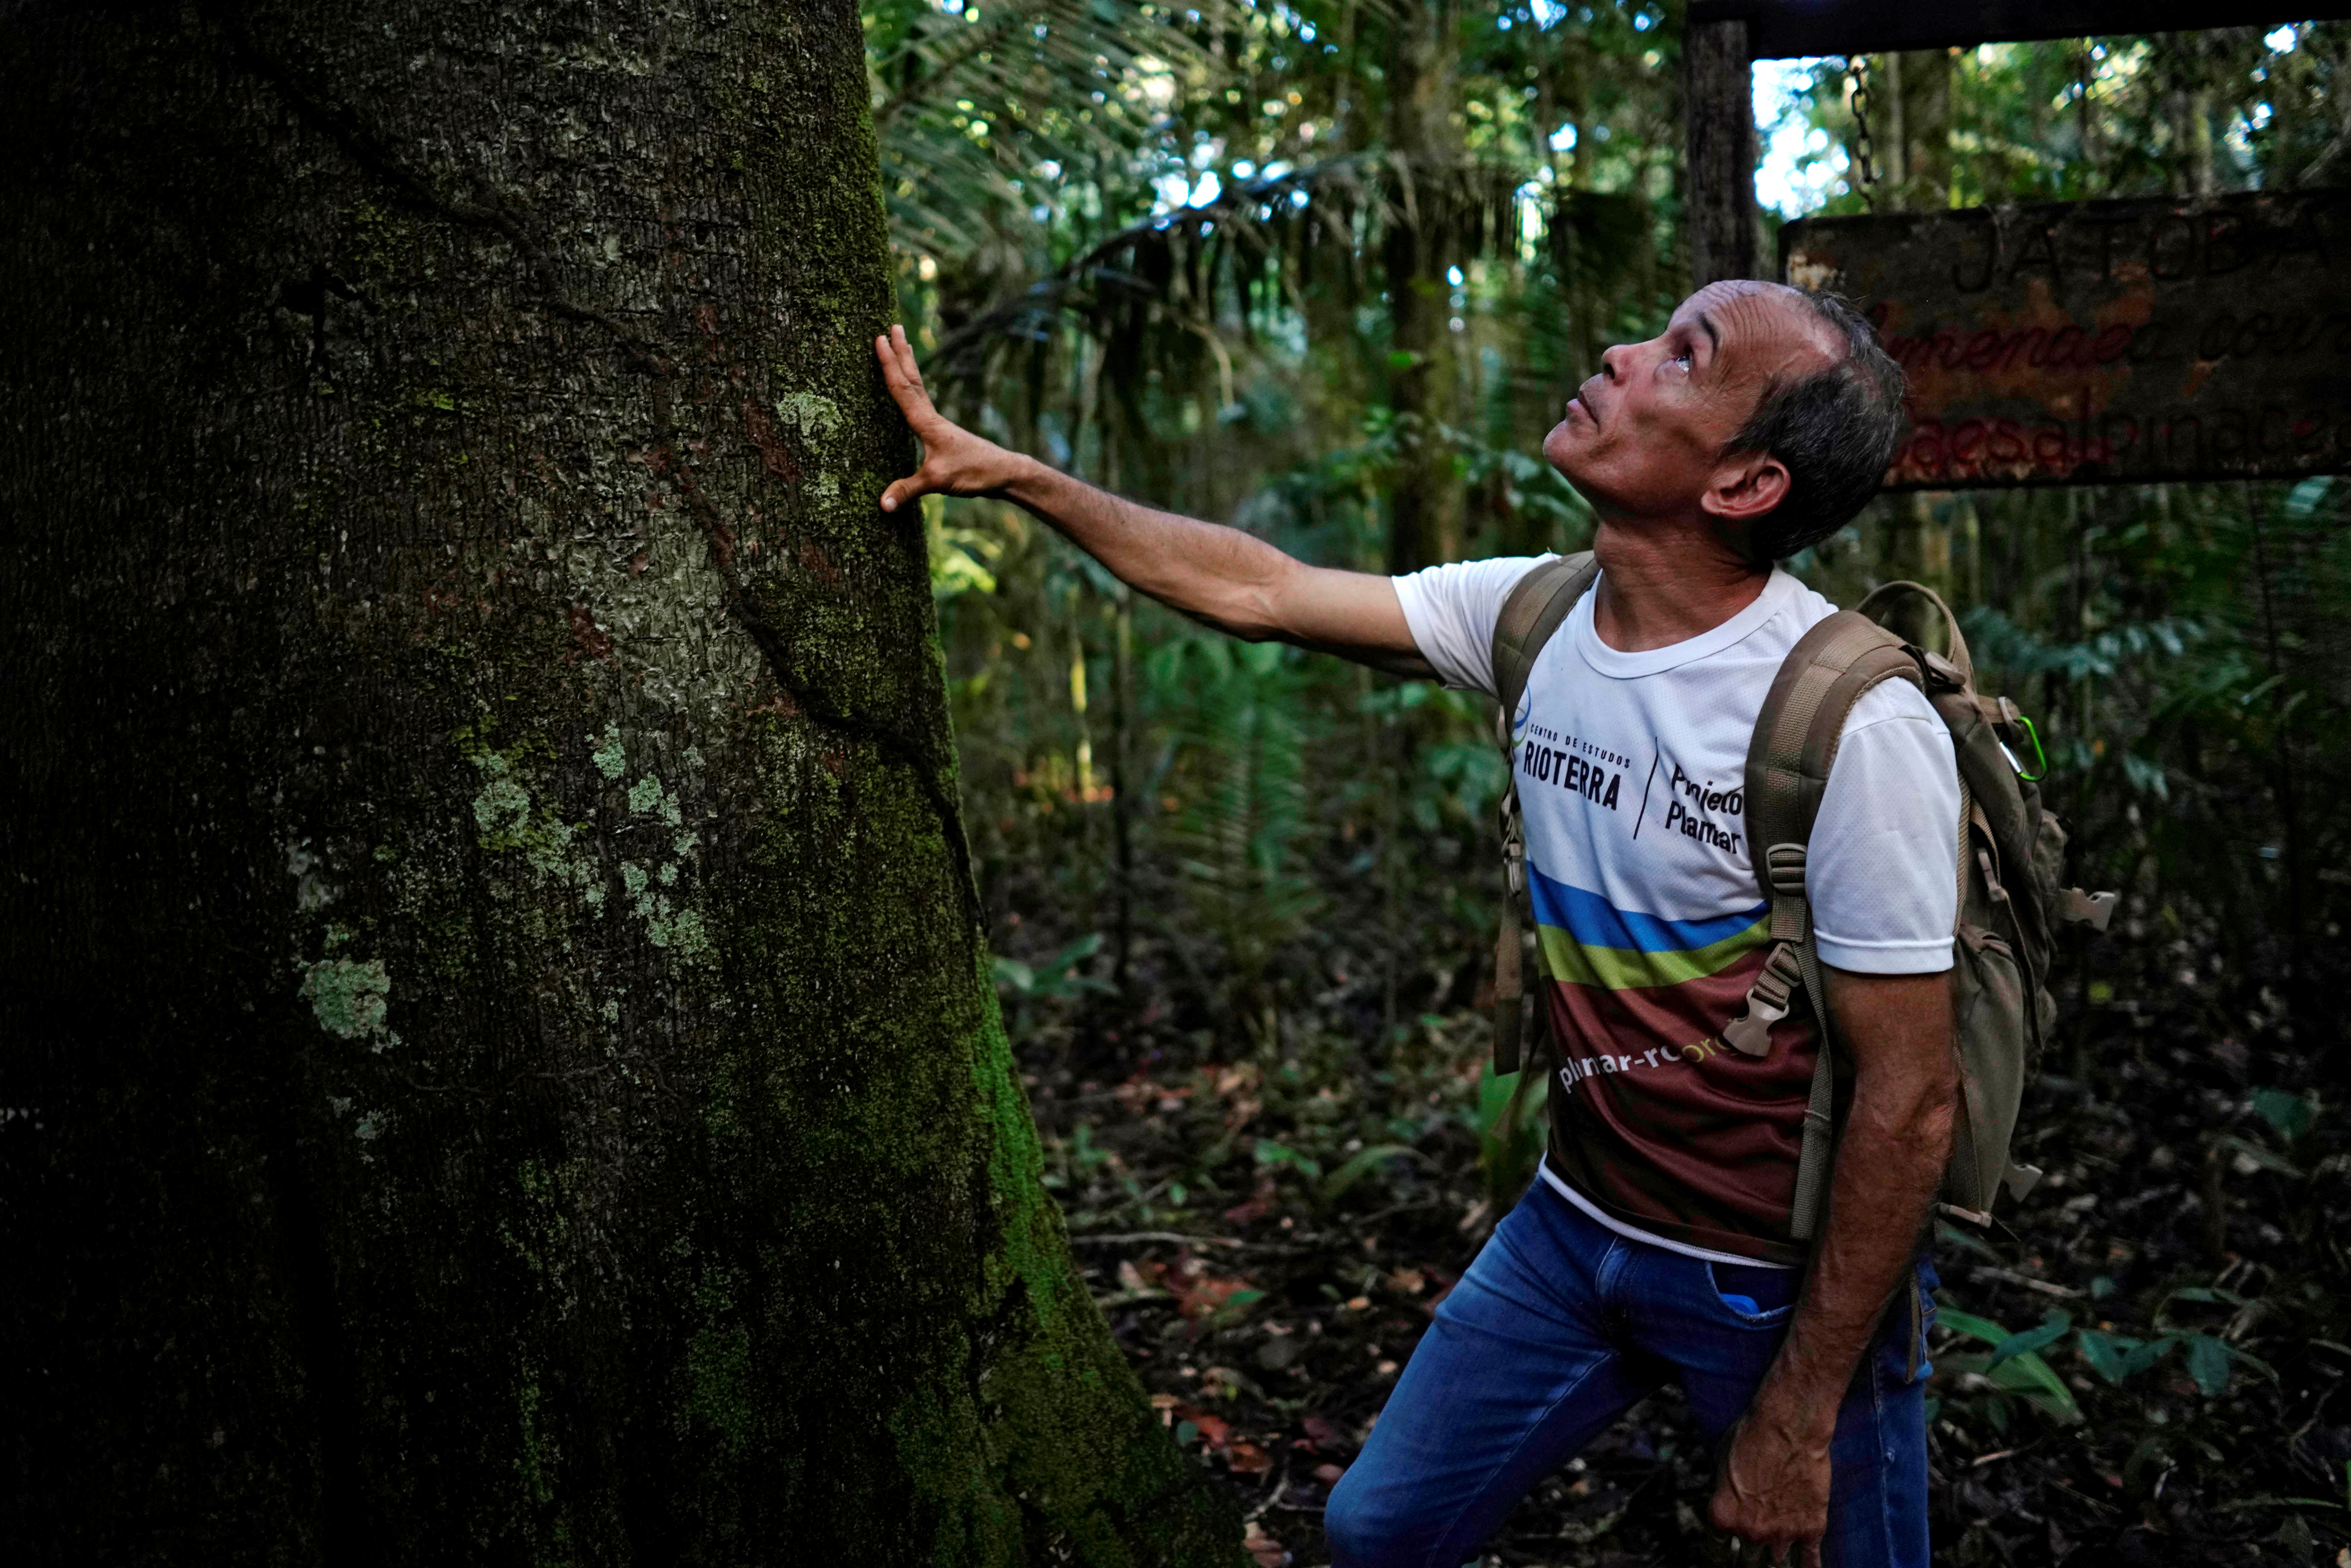 Environmentalist Dejesus Aparecido checks a tree at the National Forest of Jamari in Itapua do Oeste, Brazil, February 17, 2020. Picture taken on February 17, 2020. REUTERS/Alexandre Meneghini - RC2N9G90M87Y